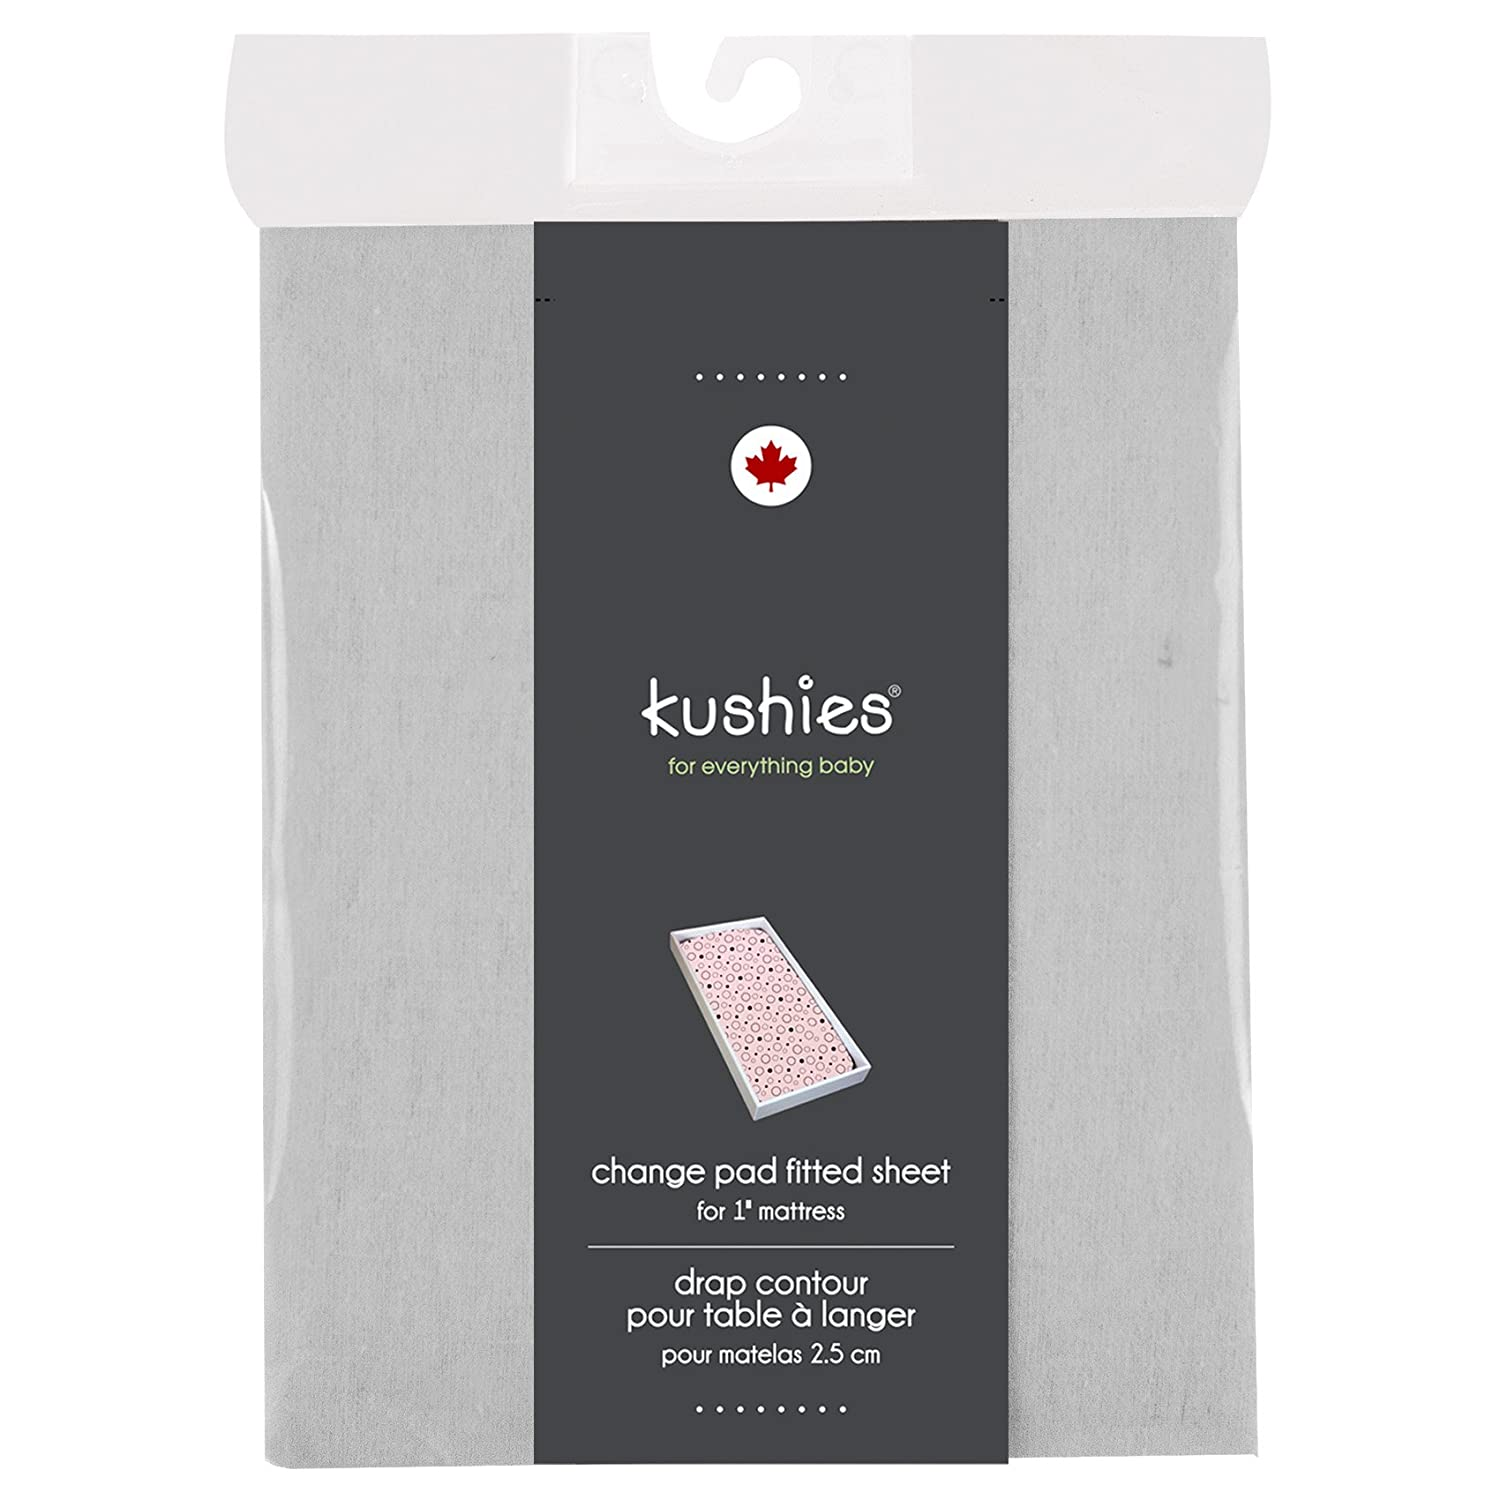 Kushies Changing Pad Cover for 1 pad, 100% breathable cotton, Made in Canada, Grey Kushies Baby S340-GRY